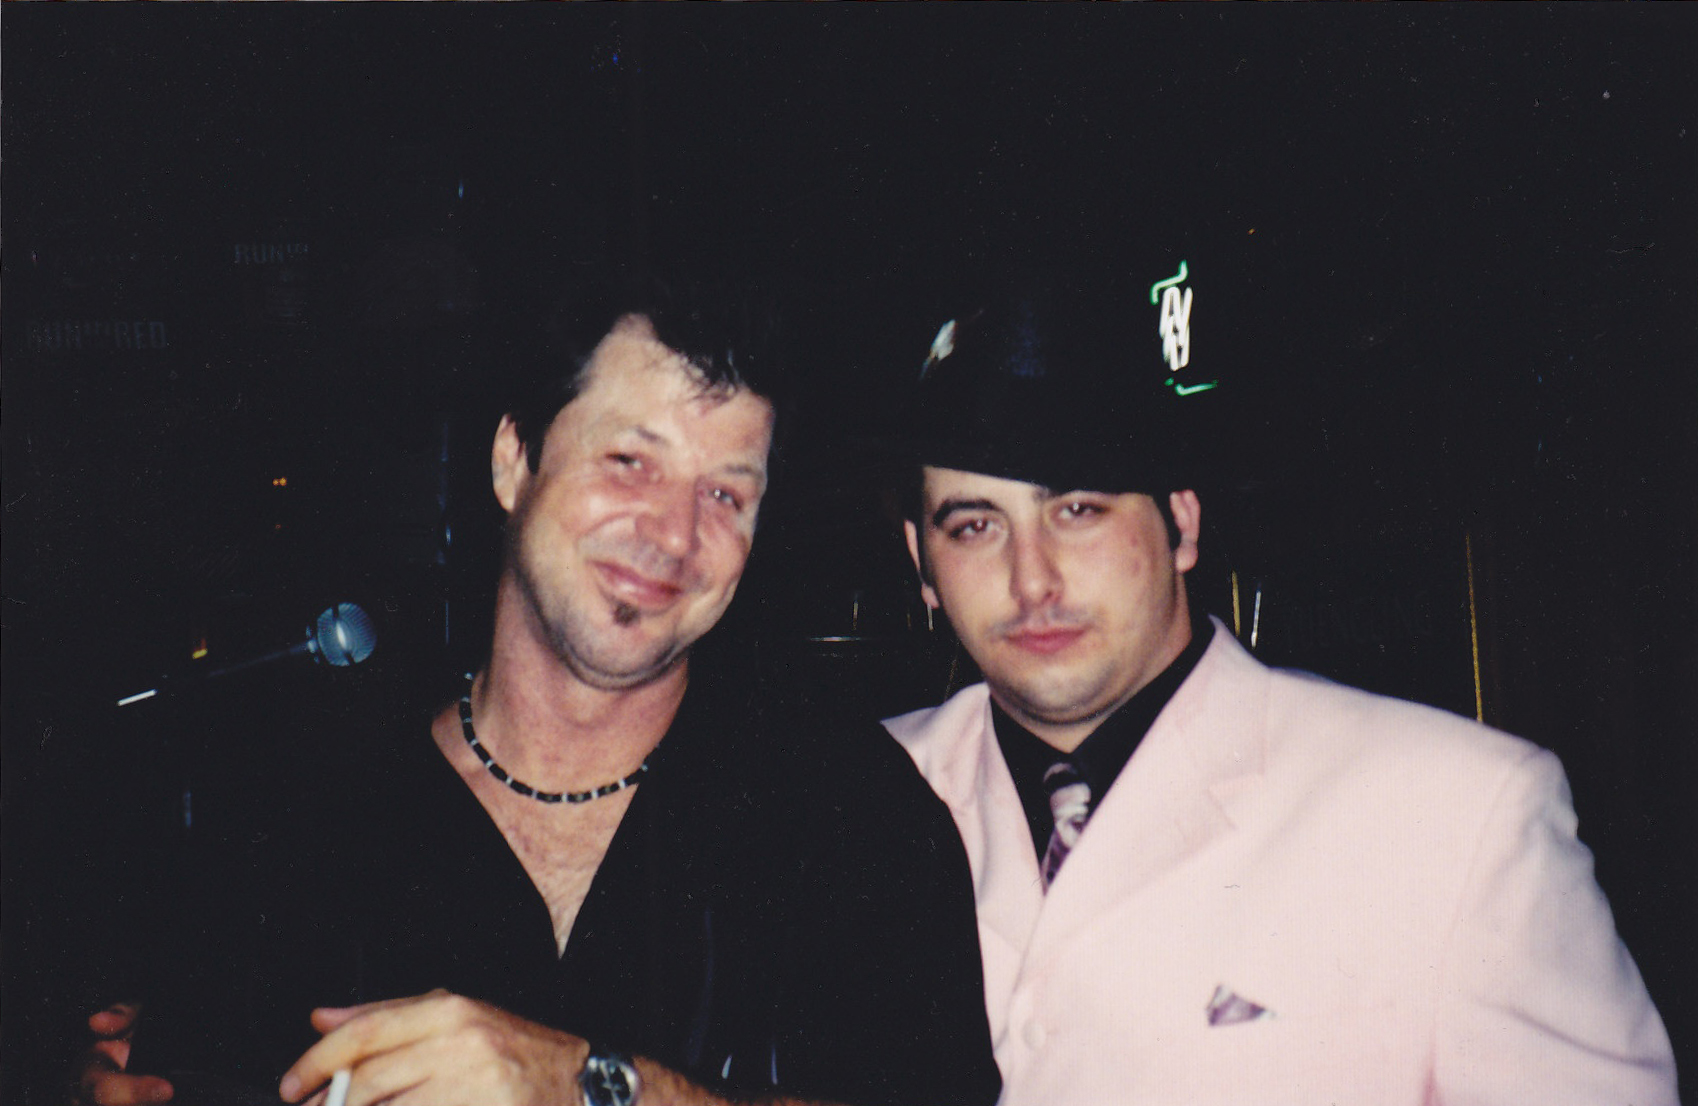 Danny DeGennaro & Mikey Junior at 5 Points Sports Bar 2003 (2)-6.jpg